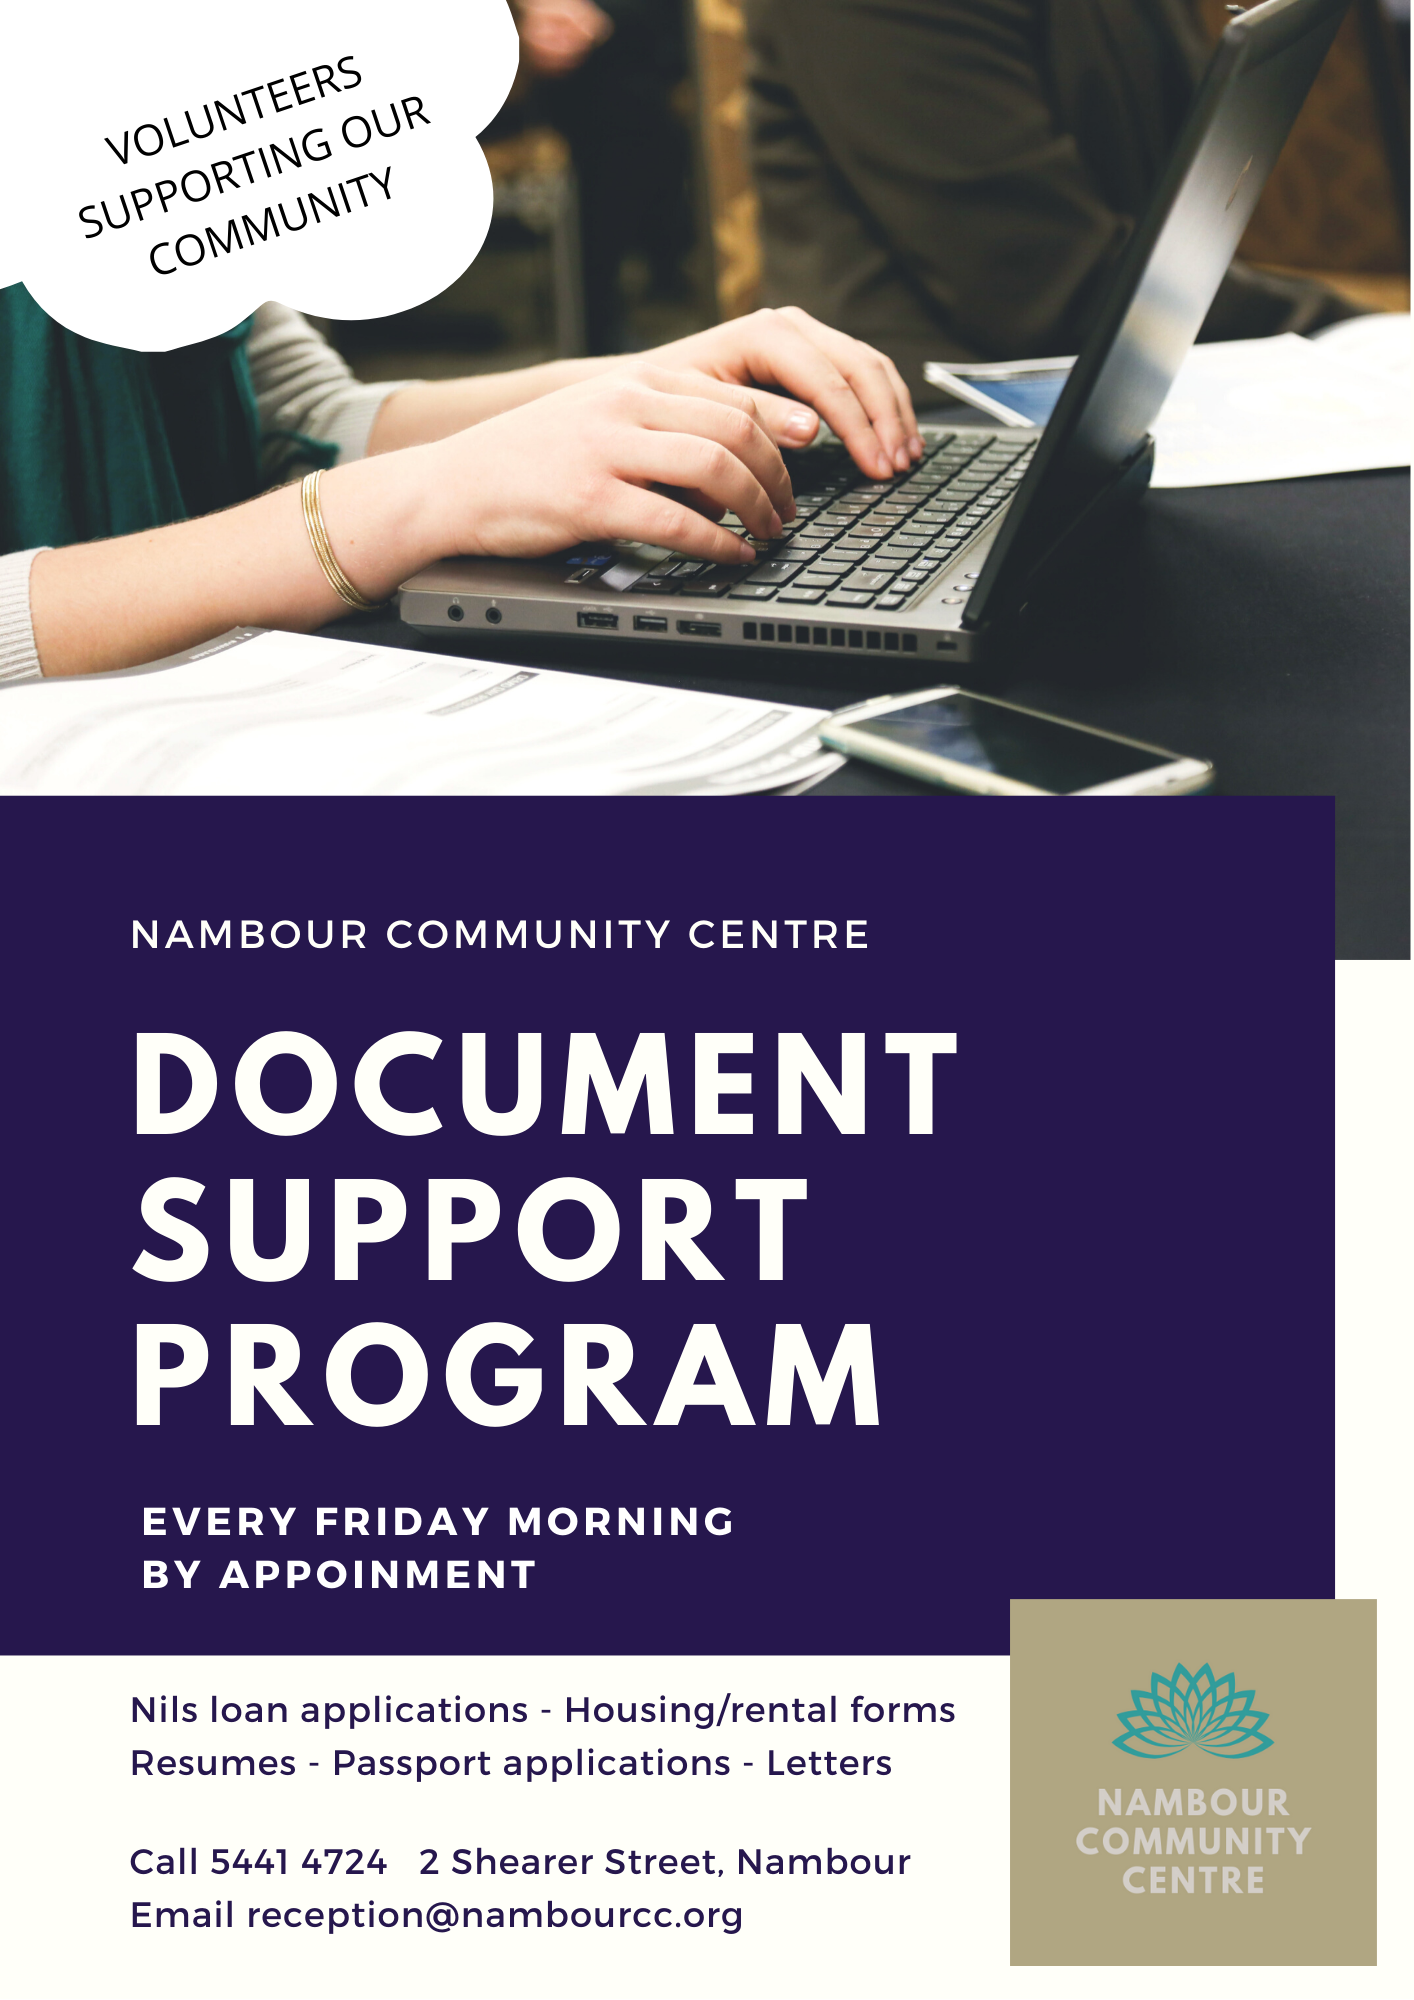 Document support